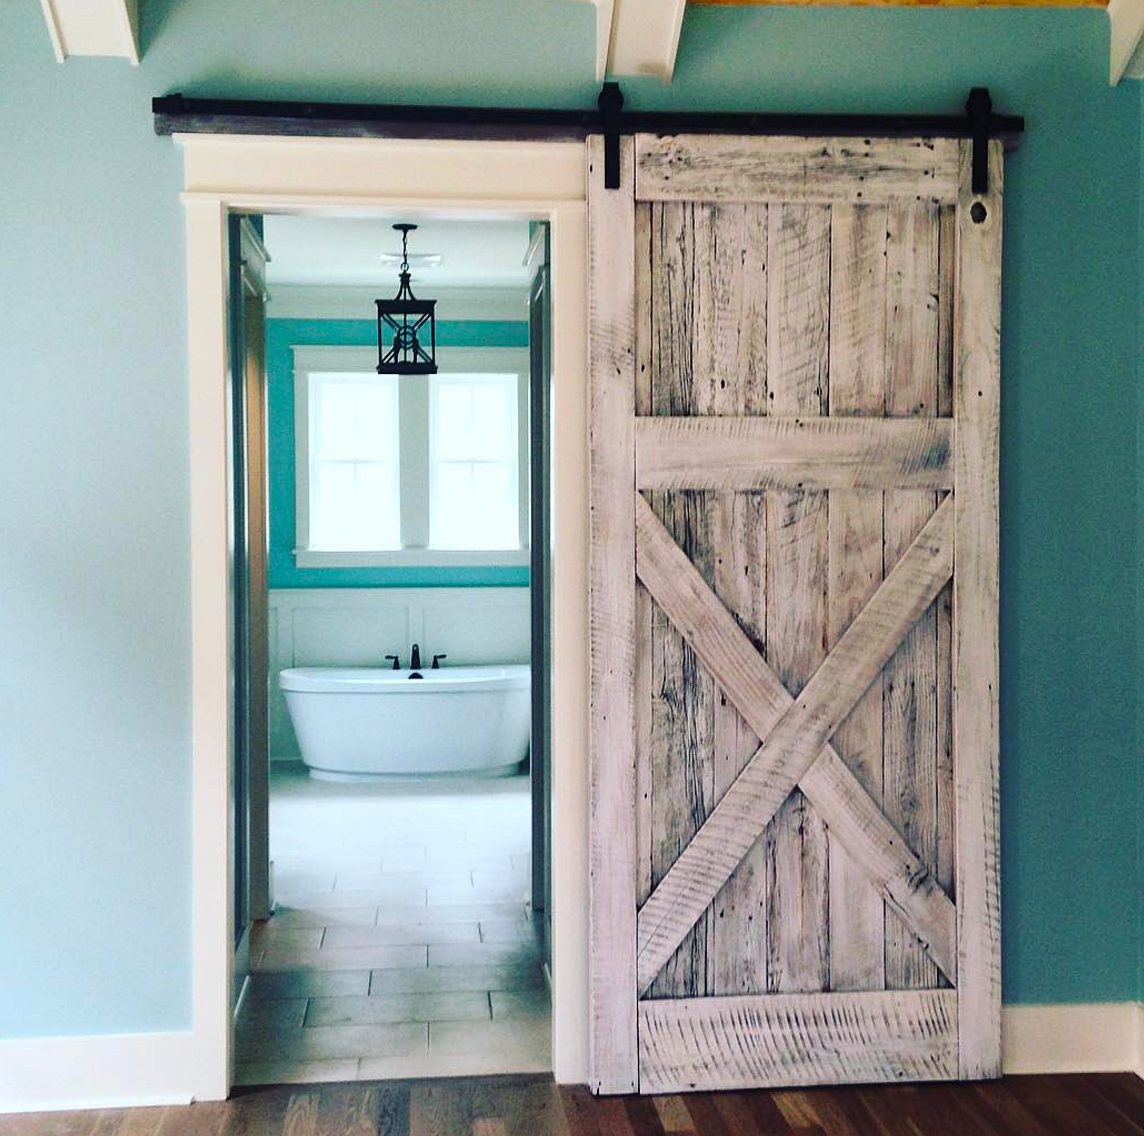 Sliding barn door made from authentic, reclaimed oak barn wood in Charleston,  SC and finished with a white lime wash. - Salt Wood Co. - Custom Reclaimed Wood Furniture In Charleston, SC